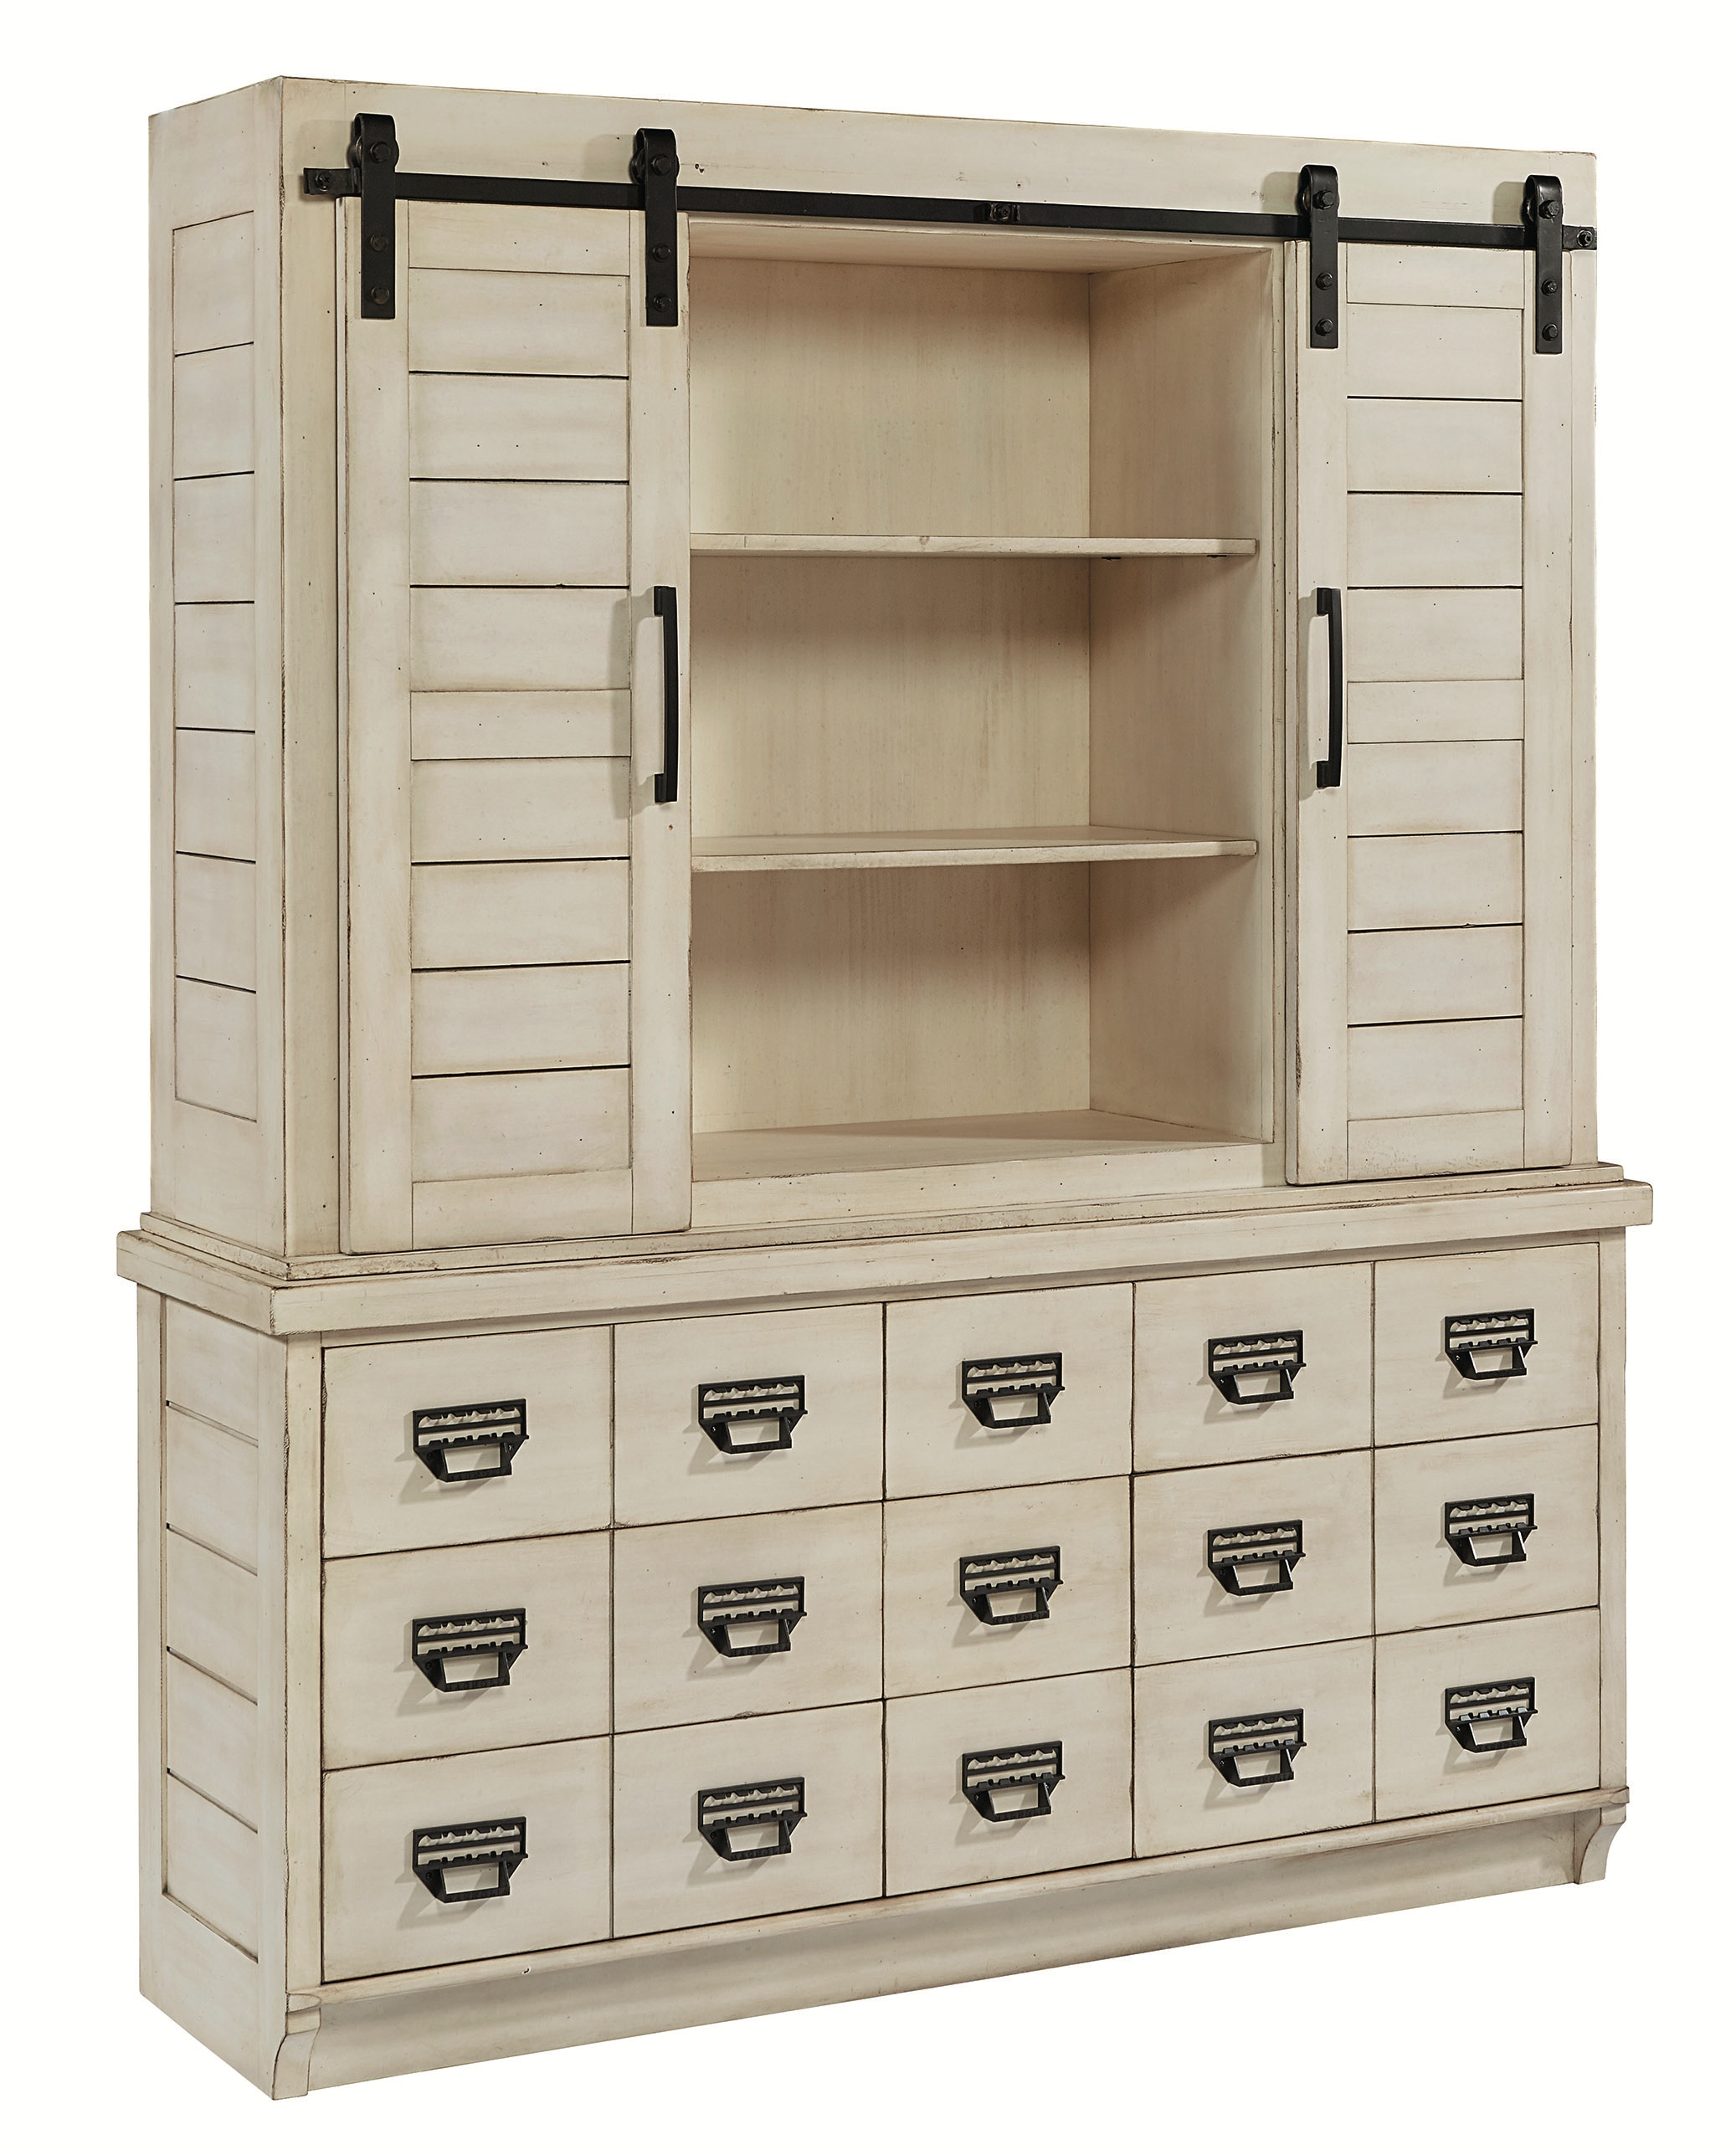 Magnolia Home BUFFET/HUTCH,ARCHIVE ANTIQUE WHITE 6010209G 29